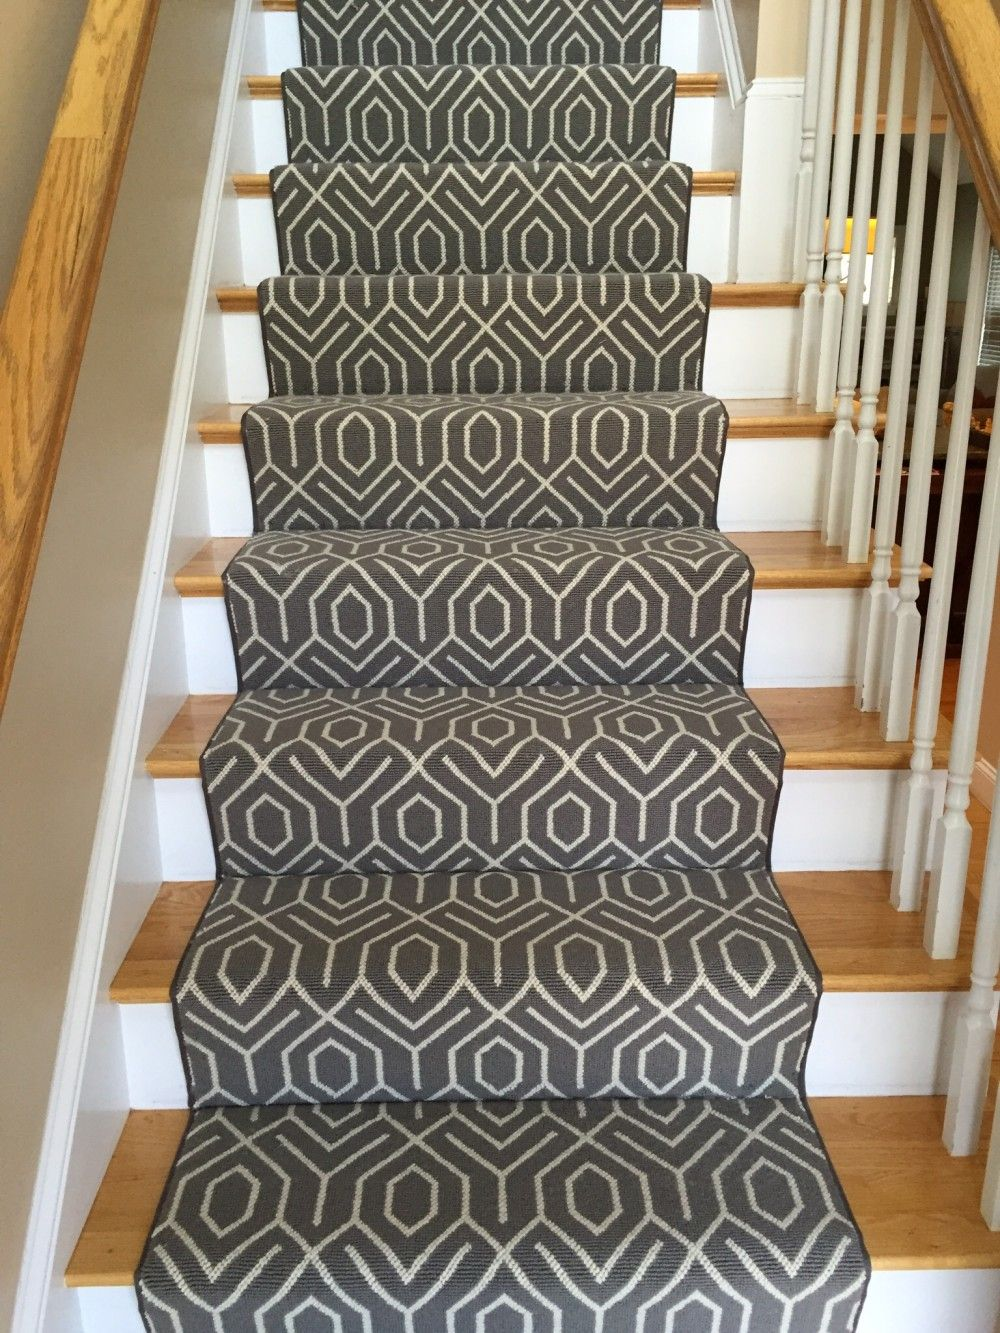 Stair Runner Carpet At Lowes Stair Runner Carpet Carpet Stairs   Carpet Runners For Stairs Lowes   Patterned Carpet   Stainmaster   Berber Carpet   Treads Lowes   Wooden Stairs